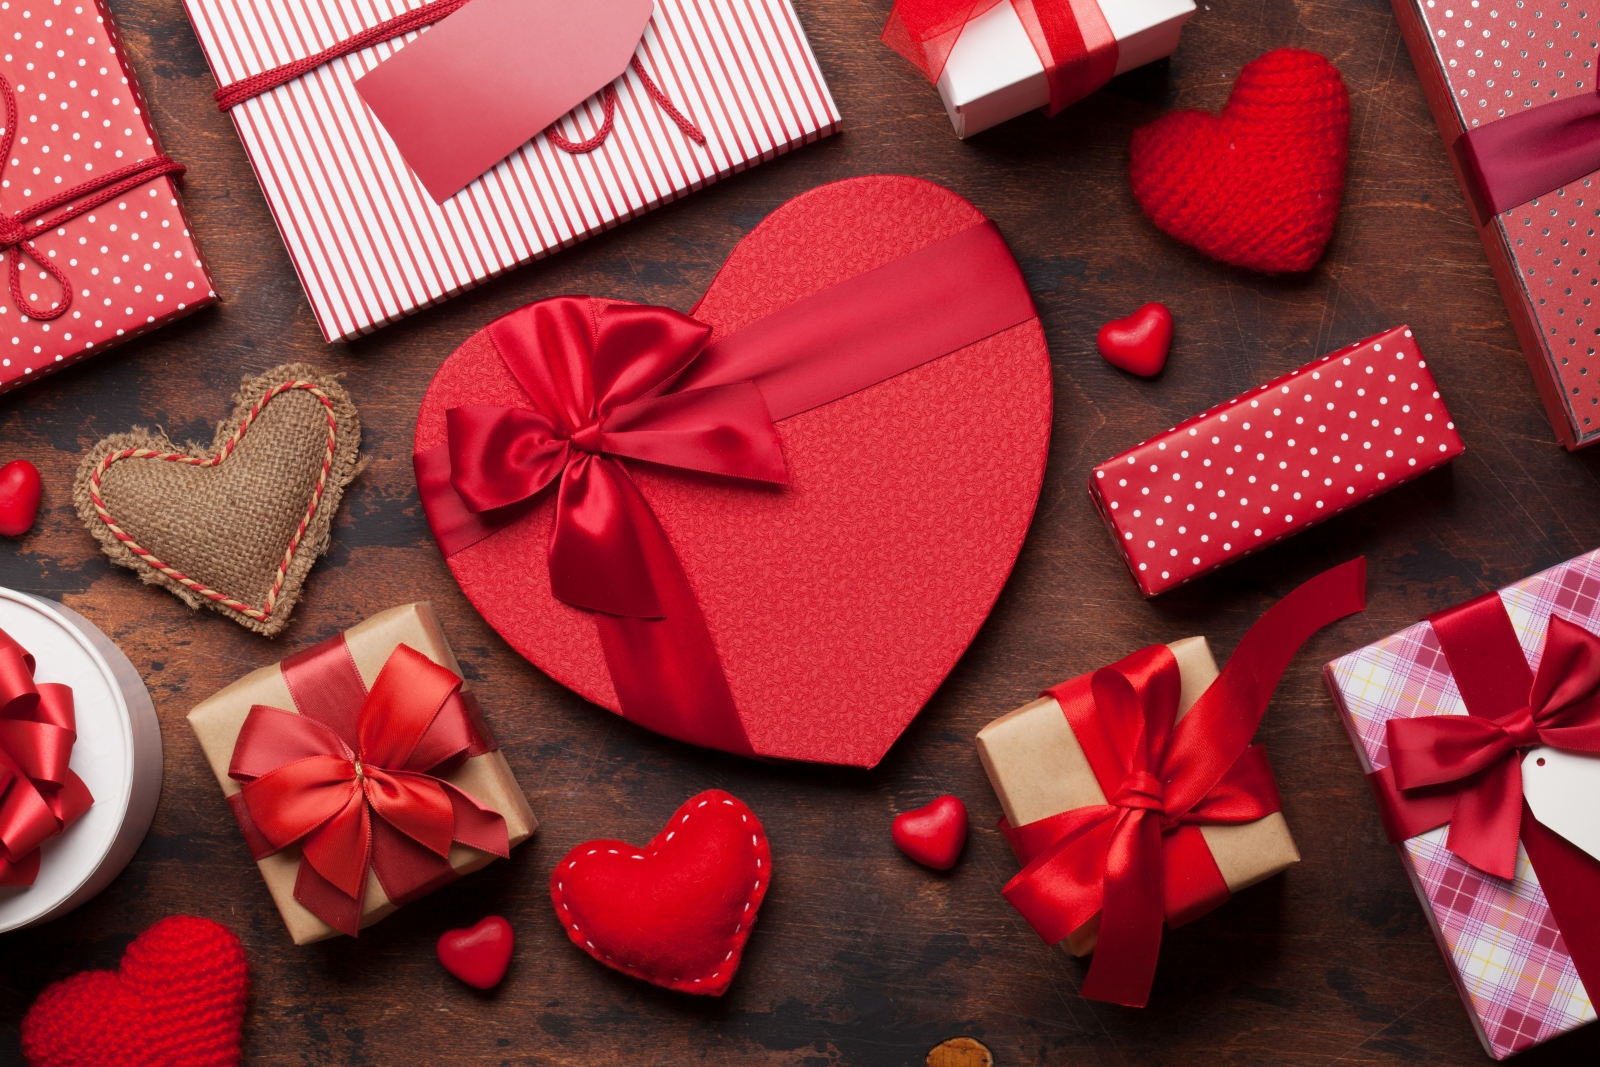 Assorted Valentine's gift boxes. Photo by karandaev/Fotolia.